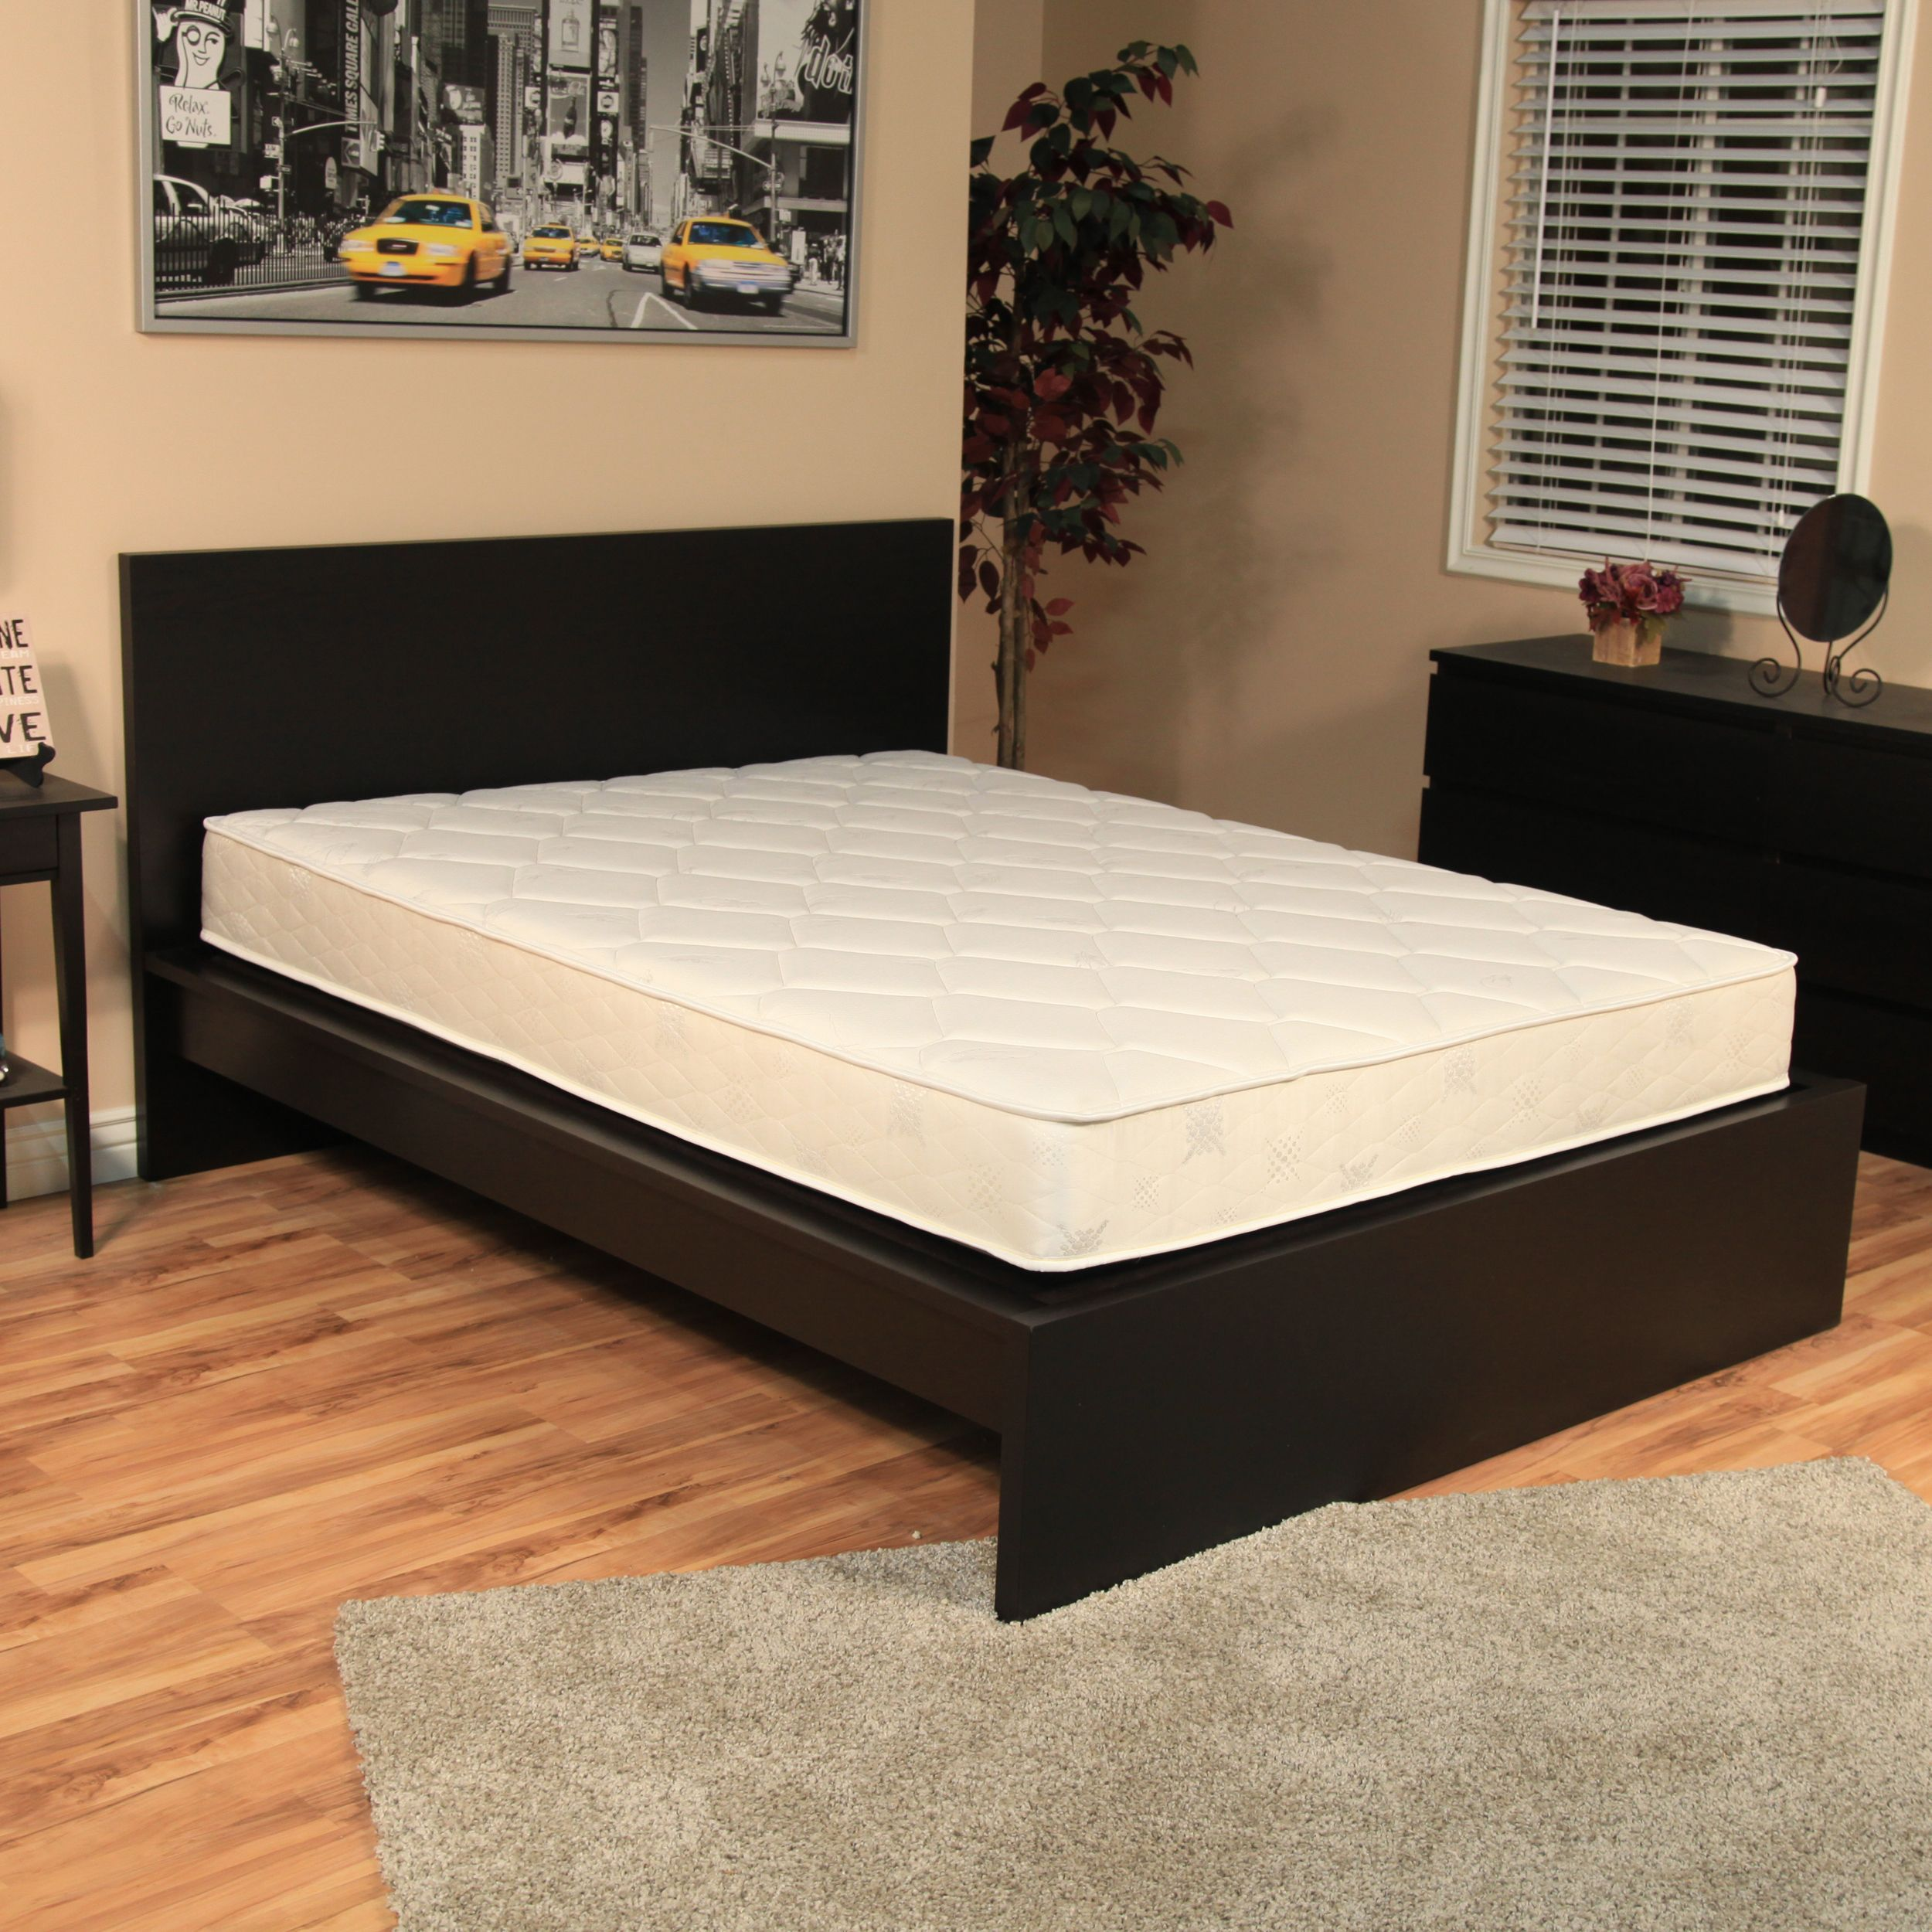 bedding crazy dreamfoam sealy post of bed reviews inch related lovely ultimate fresh mattress maine sets eurotop bangor latex dreams